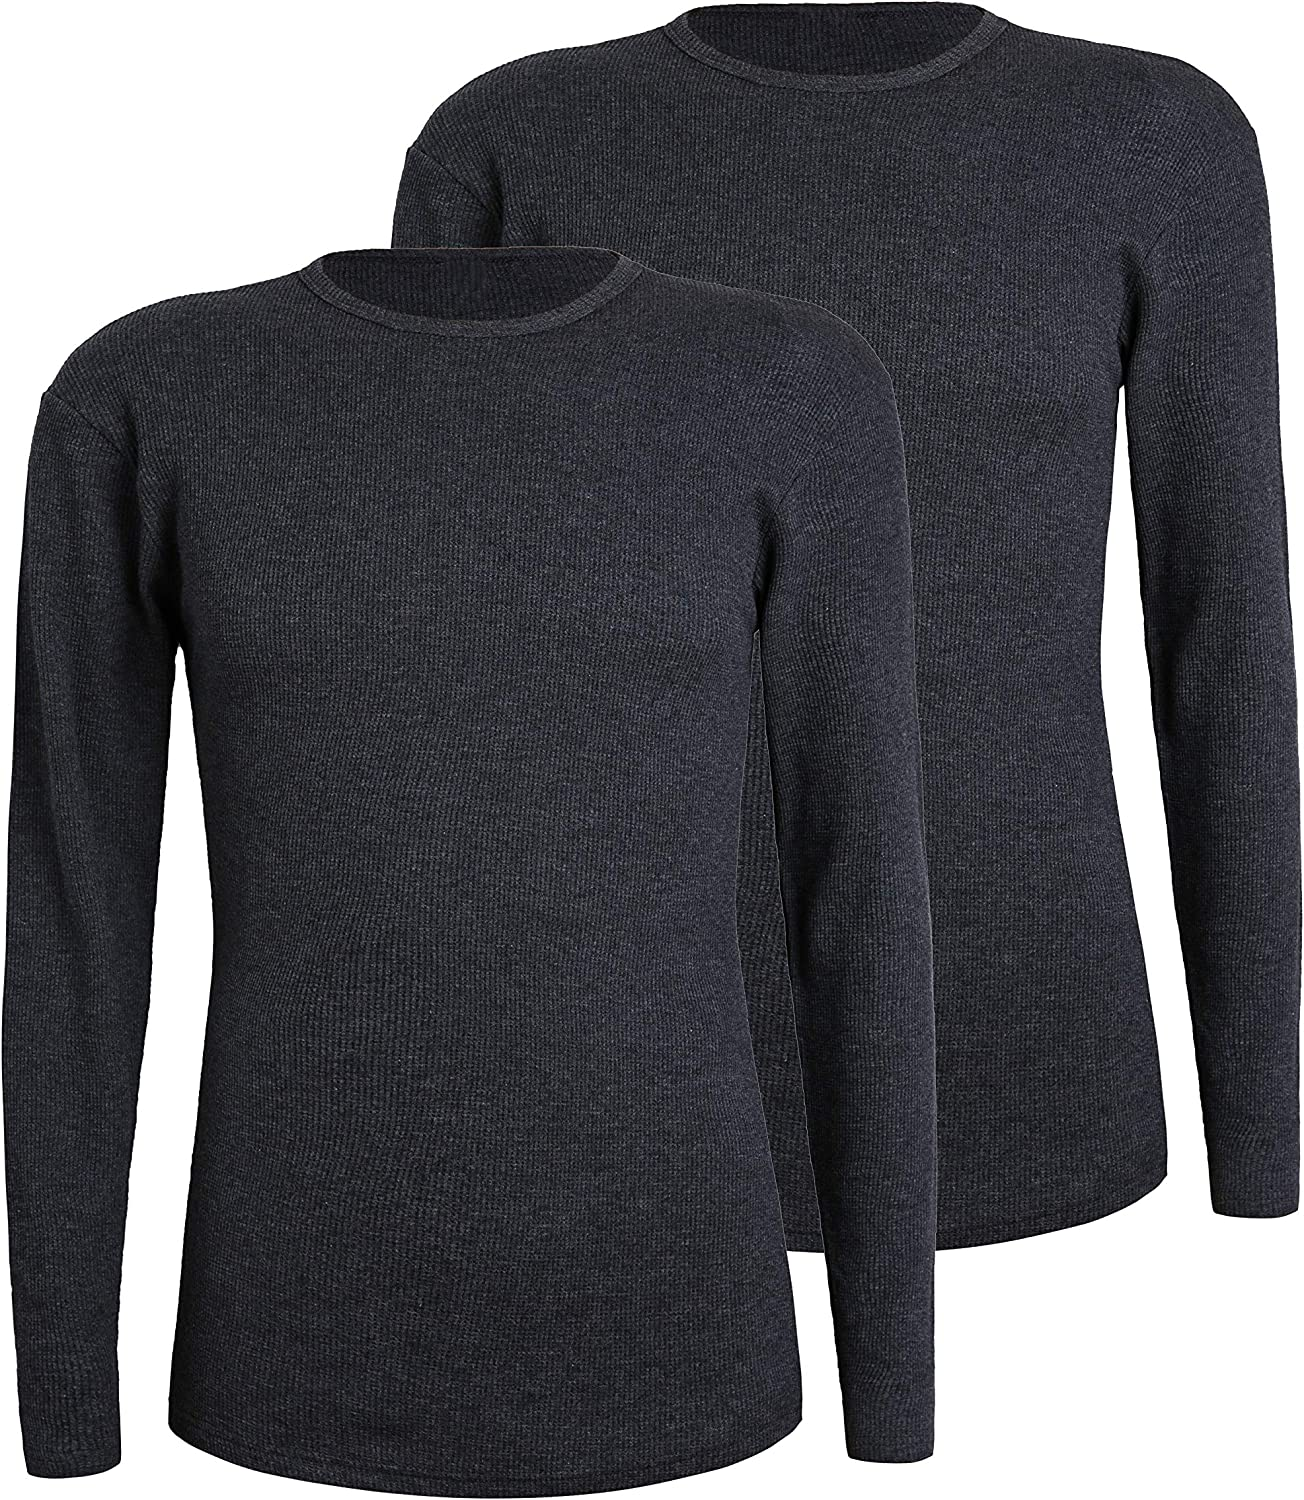 Comfneat Men's 2-Pack Thermal Long Sleeve Undershirt Waffle Knit Soft Comfy Crew Neck Top Underwear